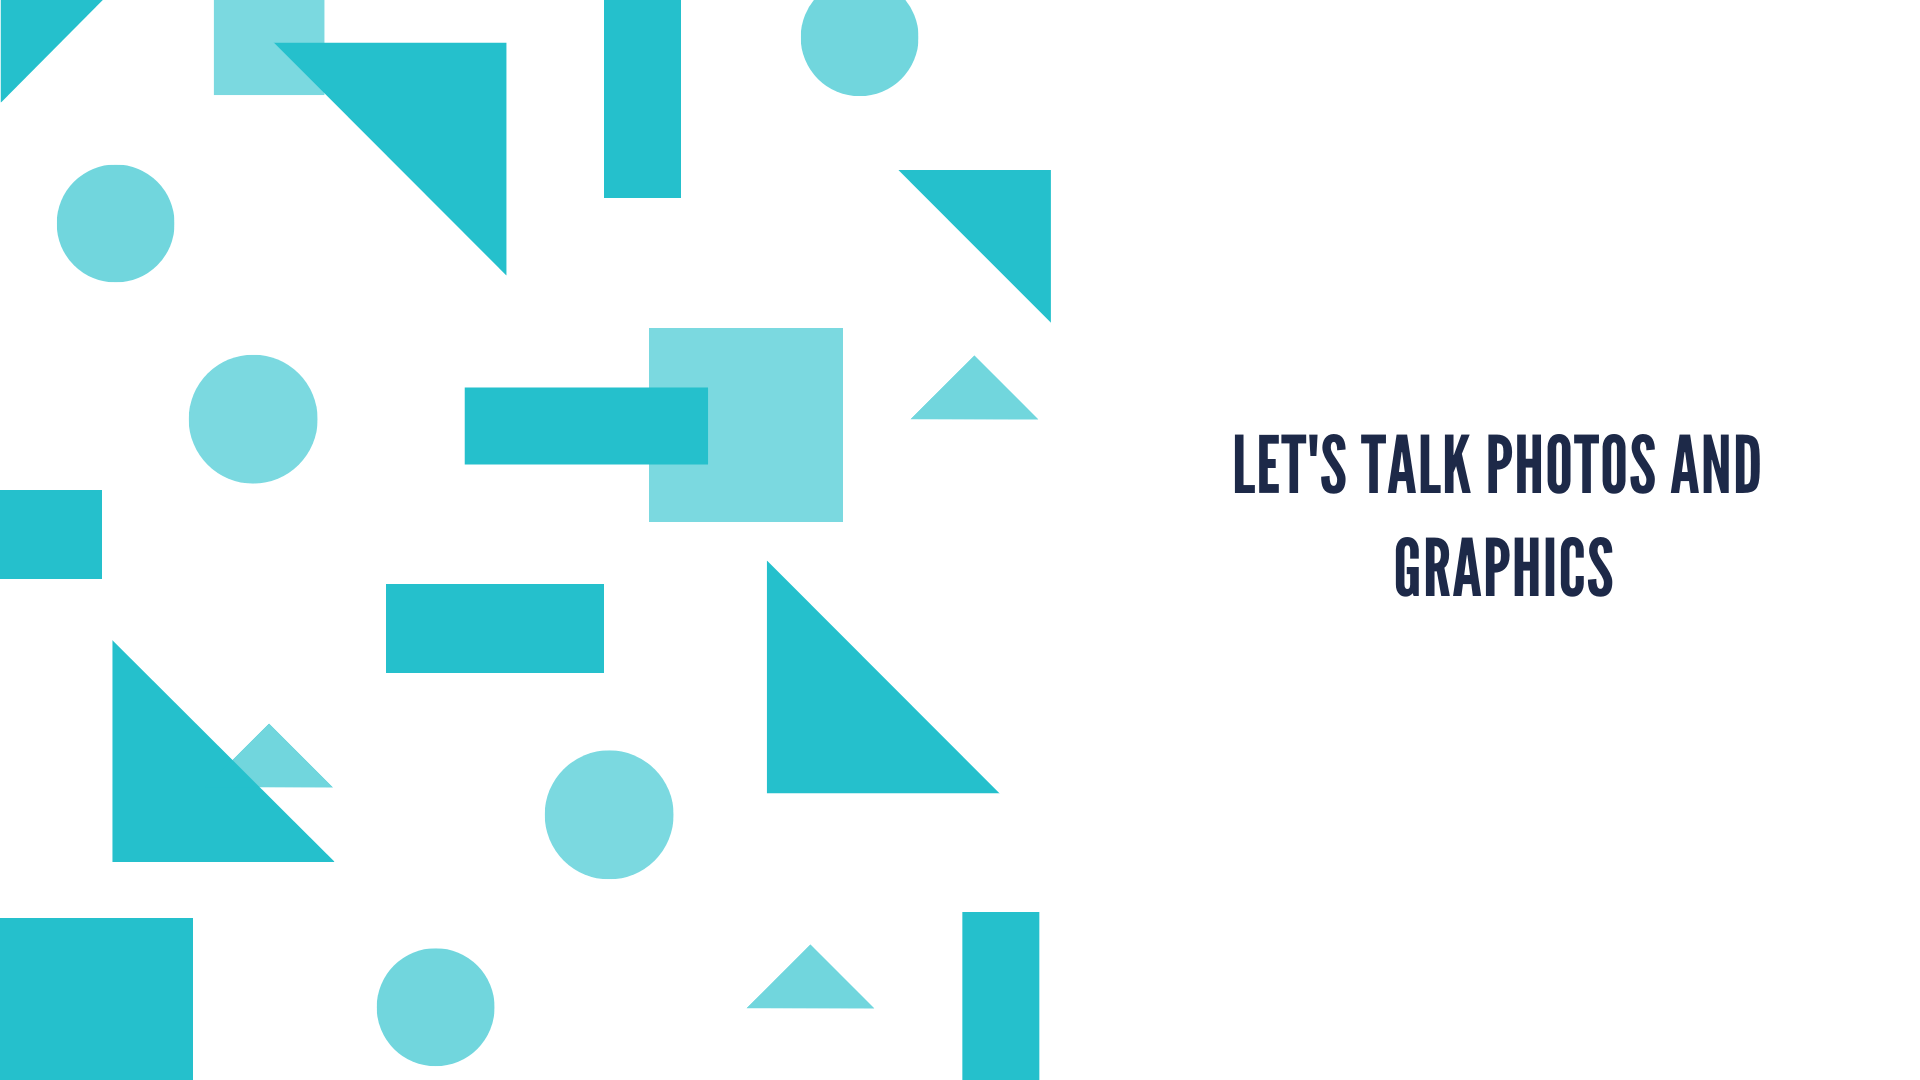 Let's Talk Photos and Graphics